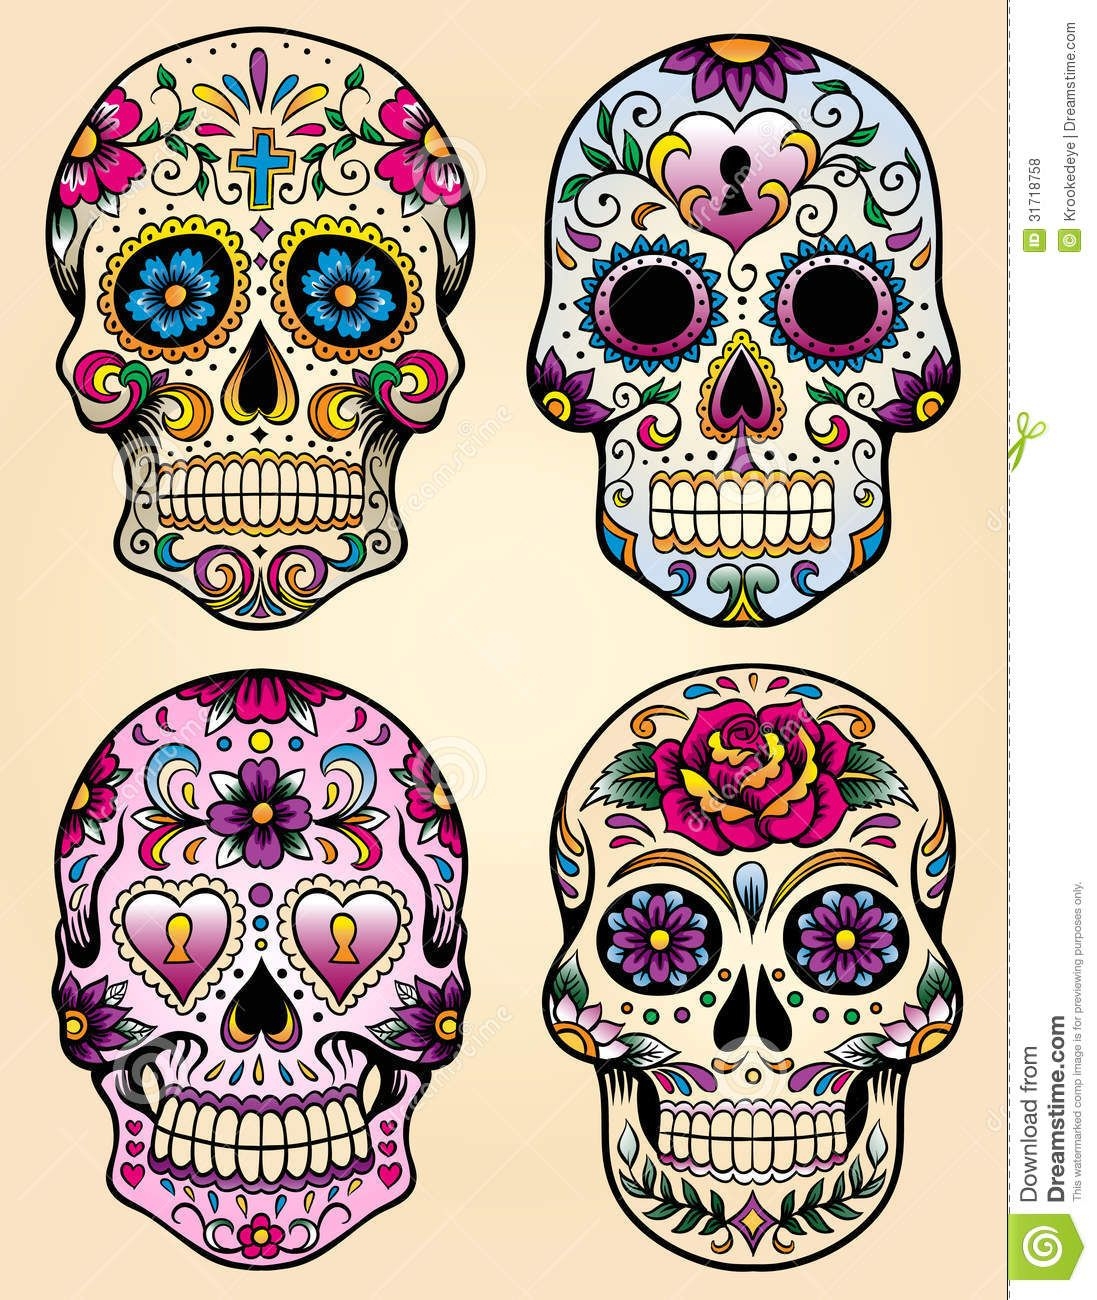 Day of the dead vector illustration set download from over 26 million high quality stock - Tatouage crane mexicain ...